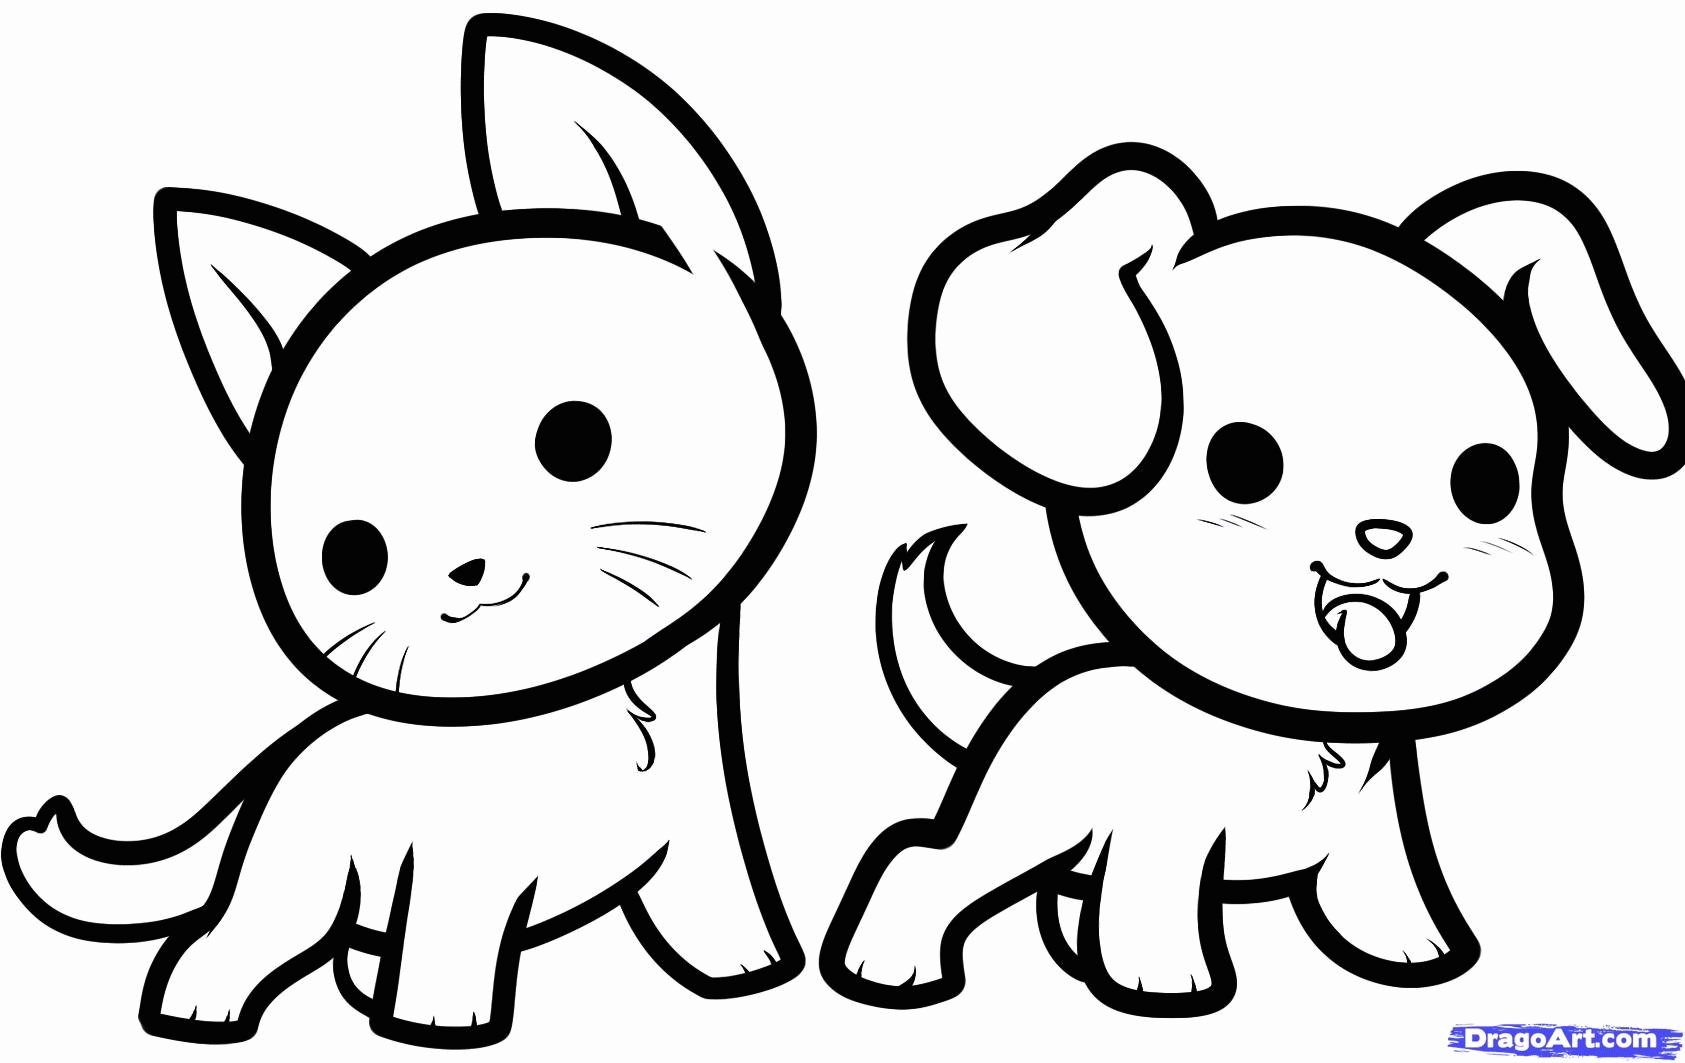 1685x1063 Kawaii Food Coloring Pages Collections Free Coloring Pages Part